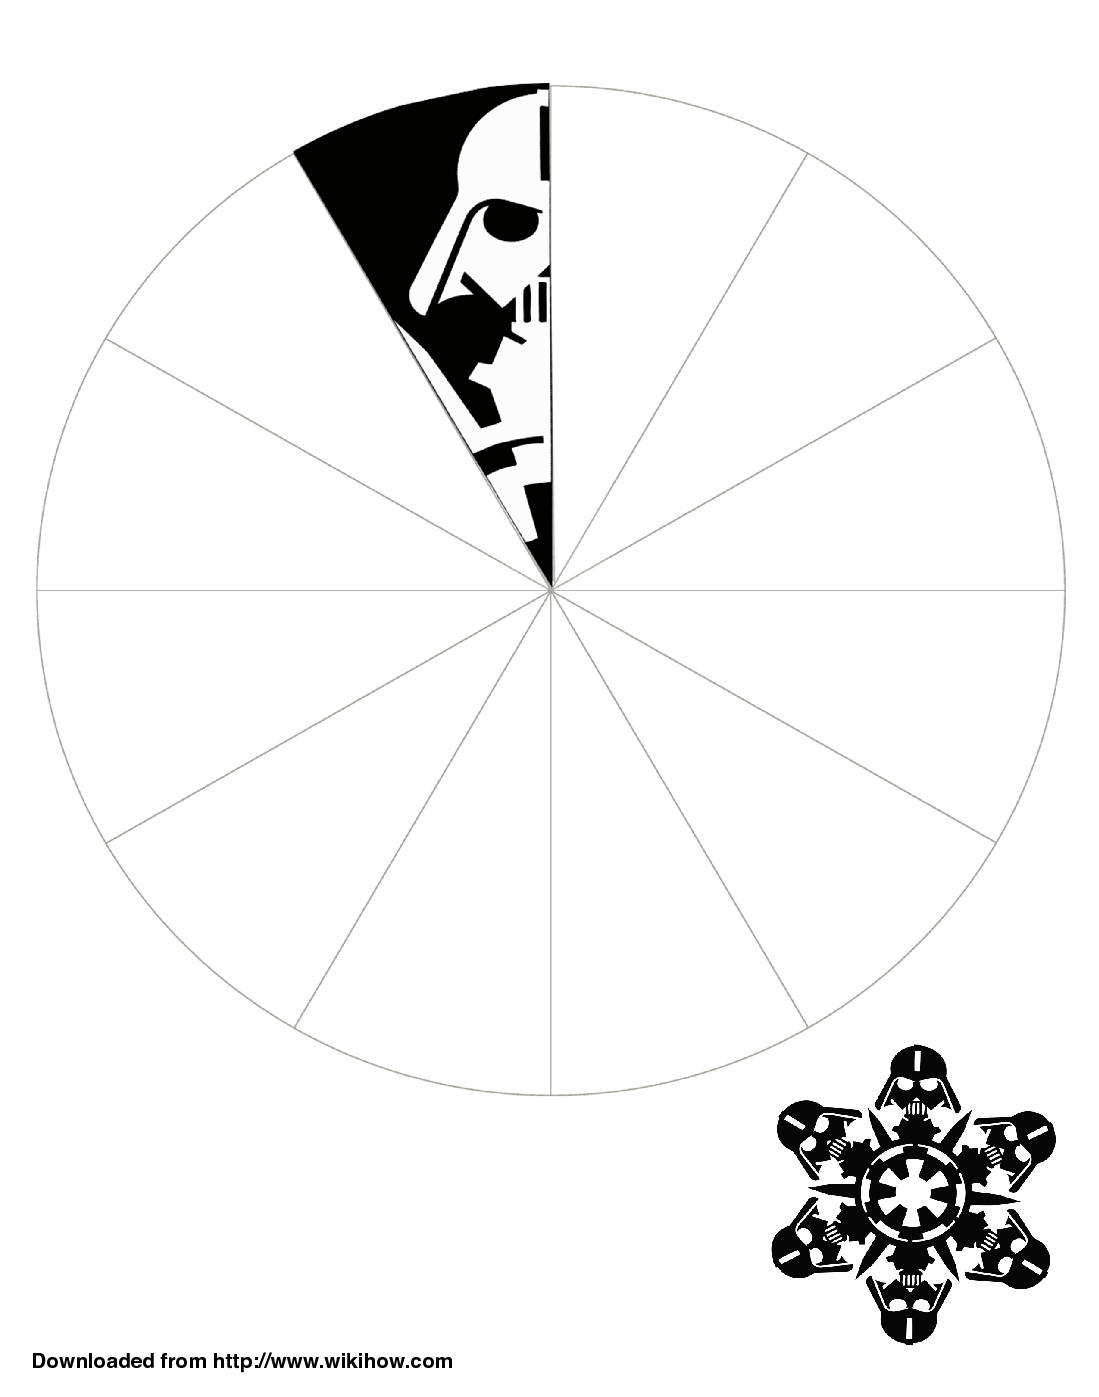 Printable Darth Vader Snowflake Template - wikiHow ...